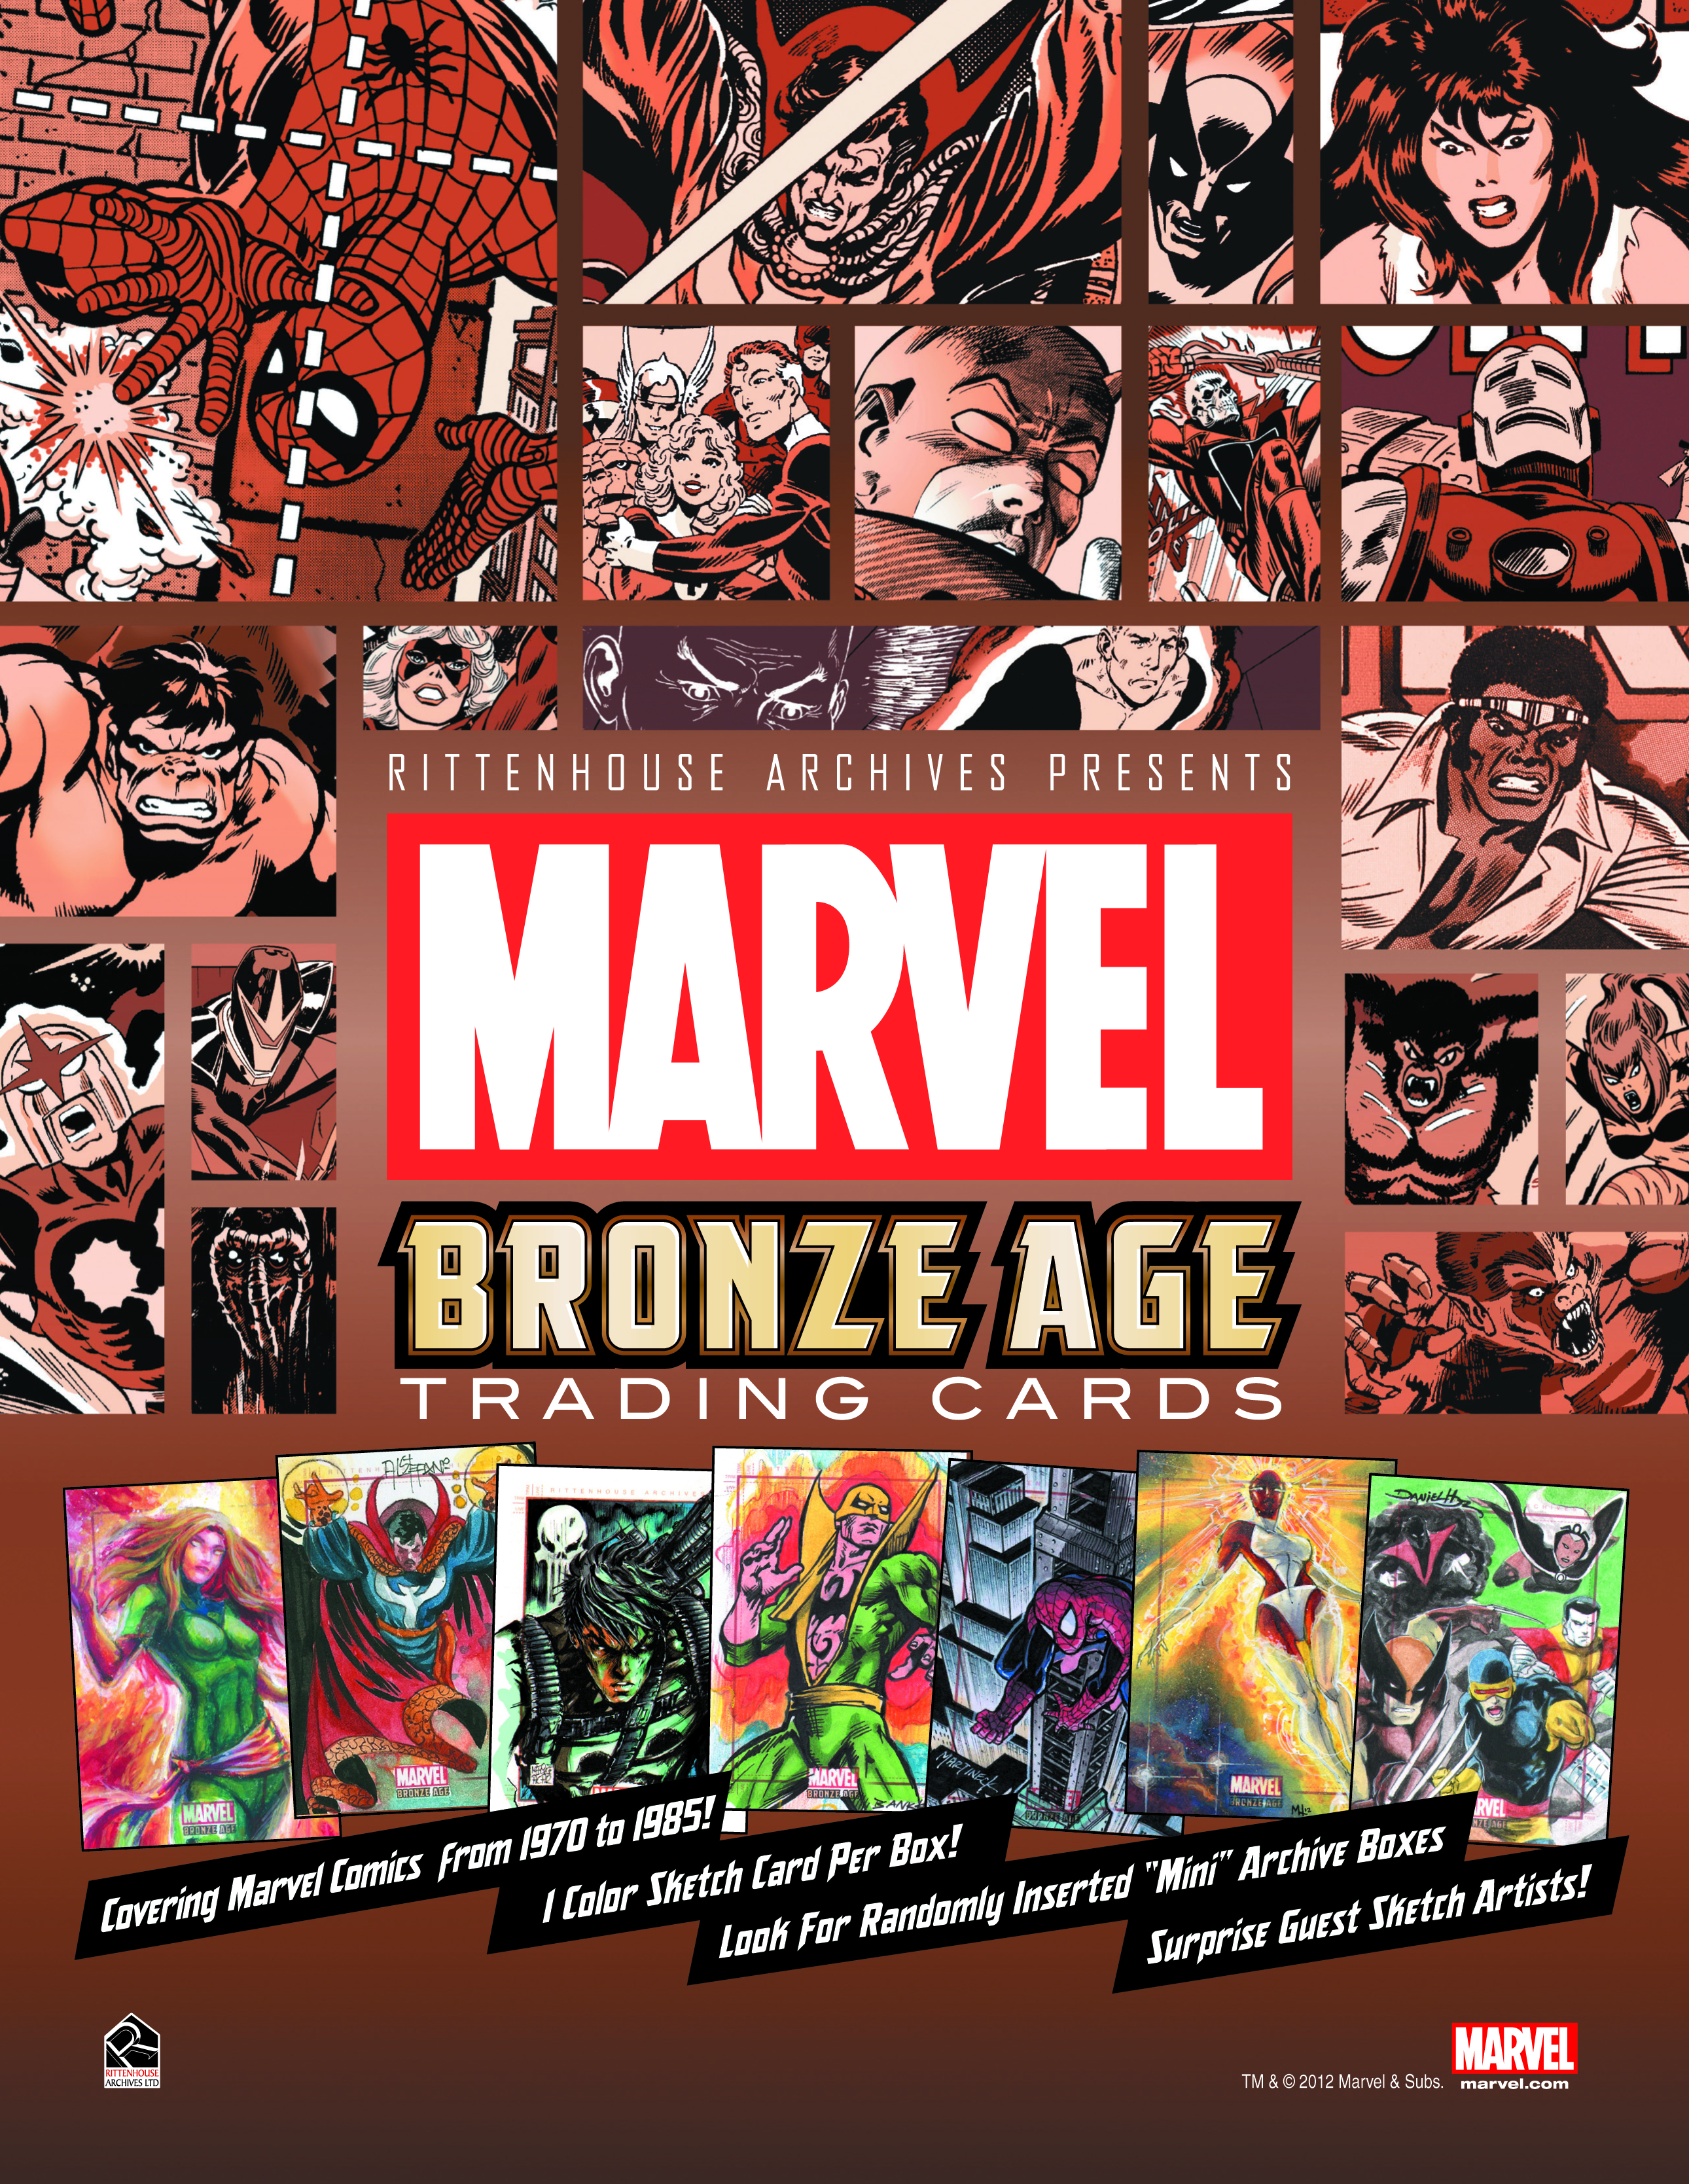 MARVEL BRONZE AGE 1970-1985 T/C BOX